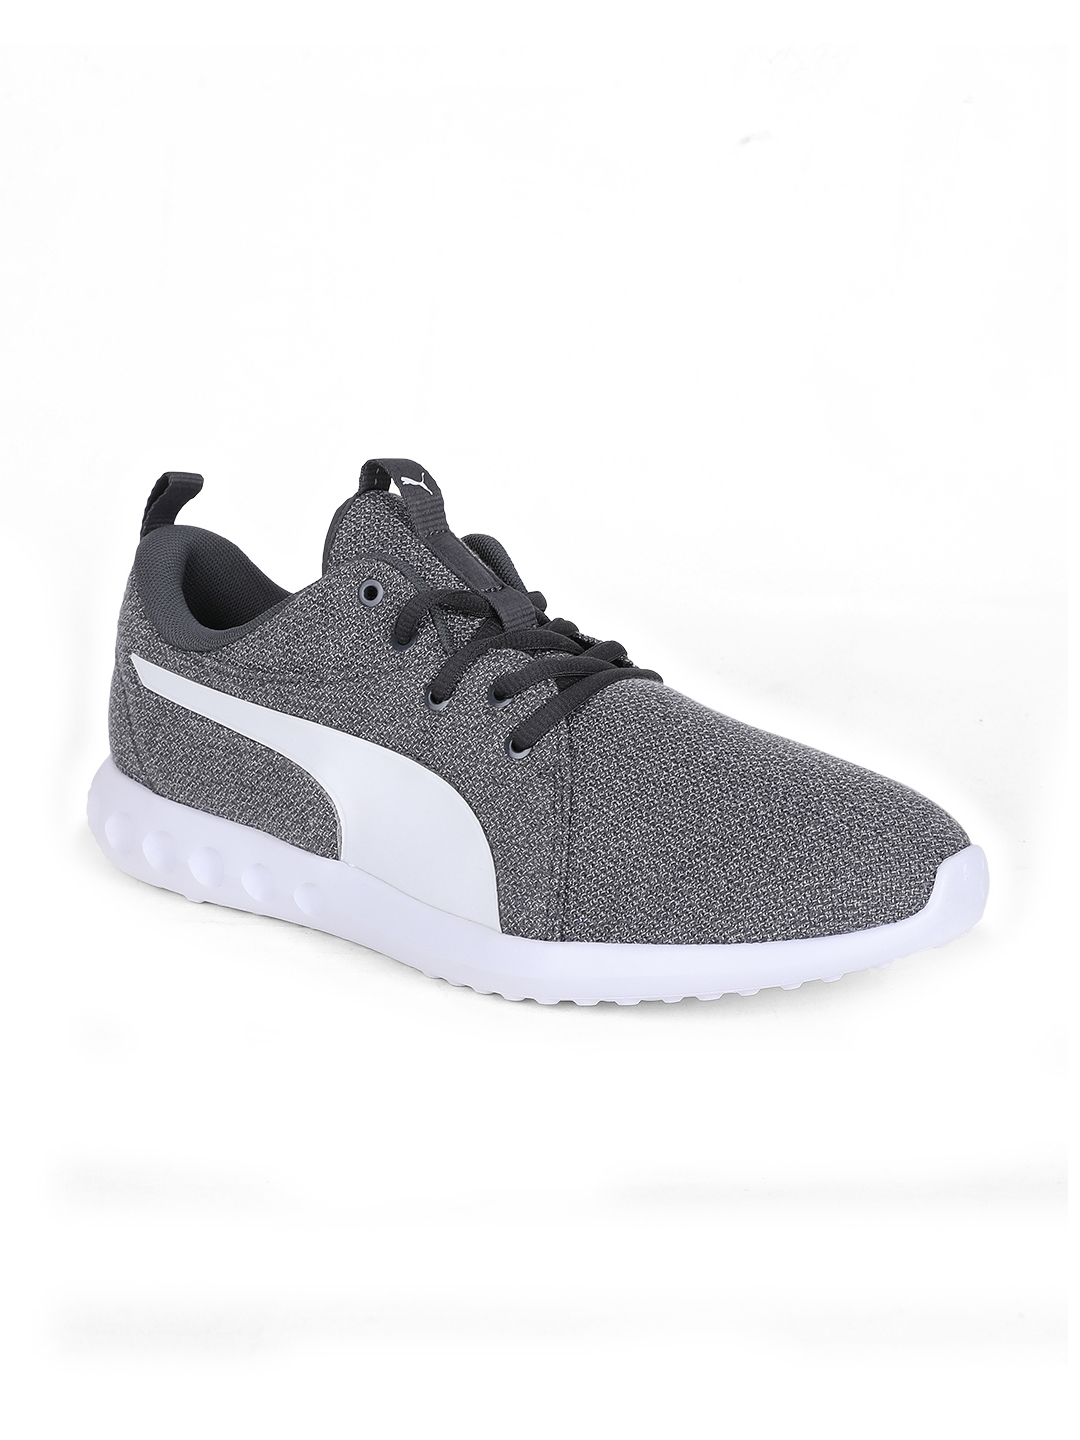 4285be9a264b Buy Puma Men Grey Carson 2 Knit NM Walking Shoes - Sports Shoes for ...